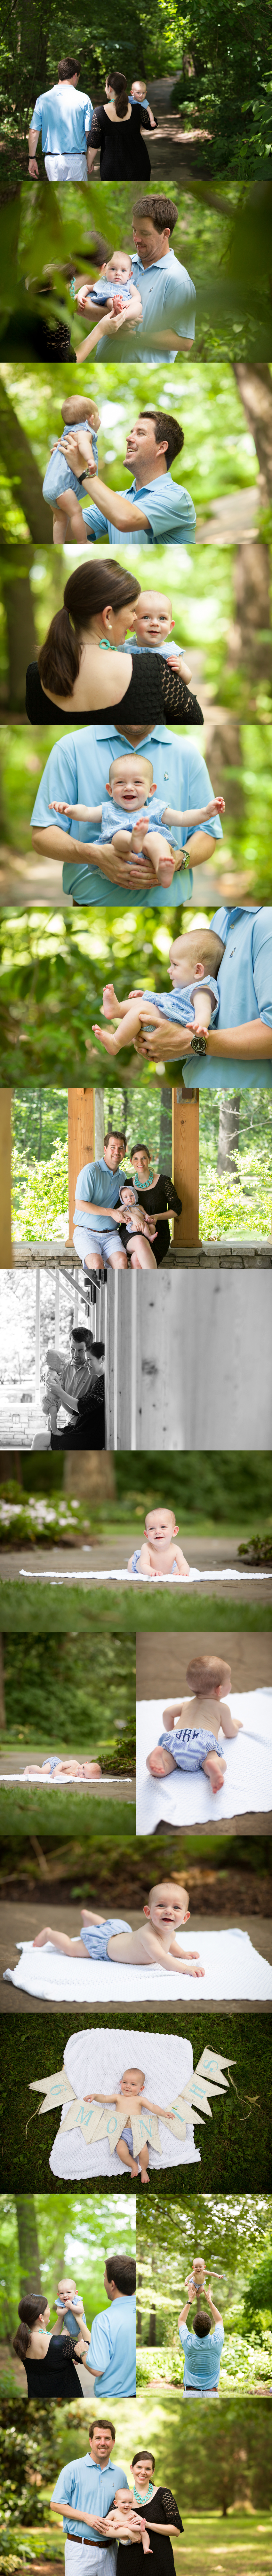 Memphis Botanic Gardens Family Session